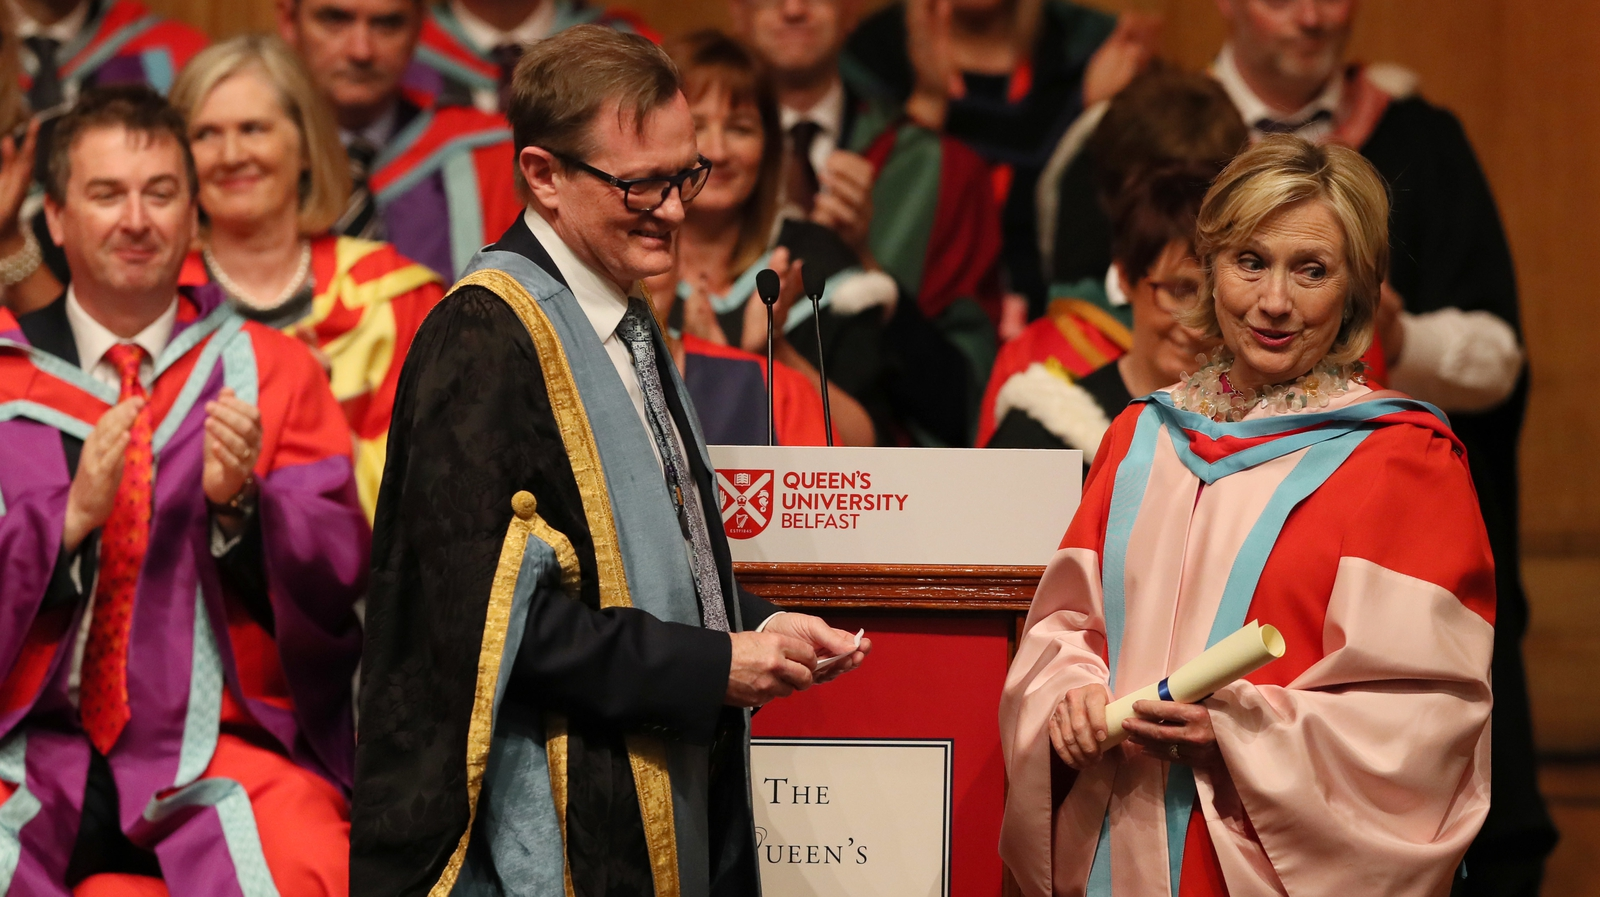 Hillary Clinton appointed Chancellor at Queen's